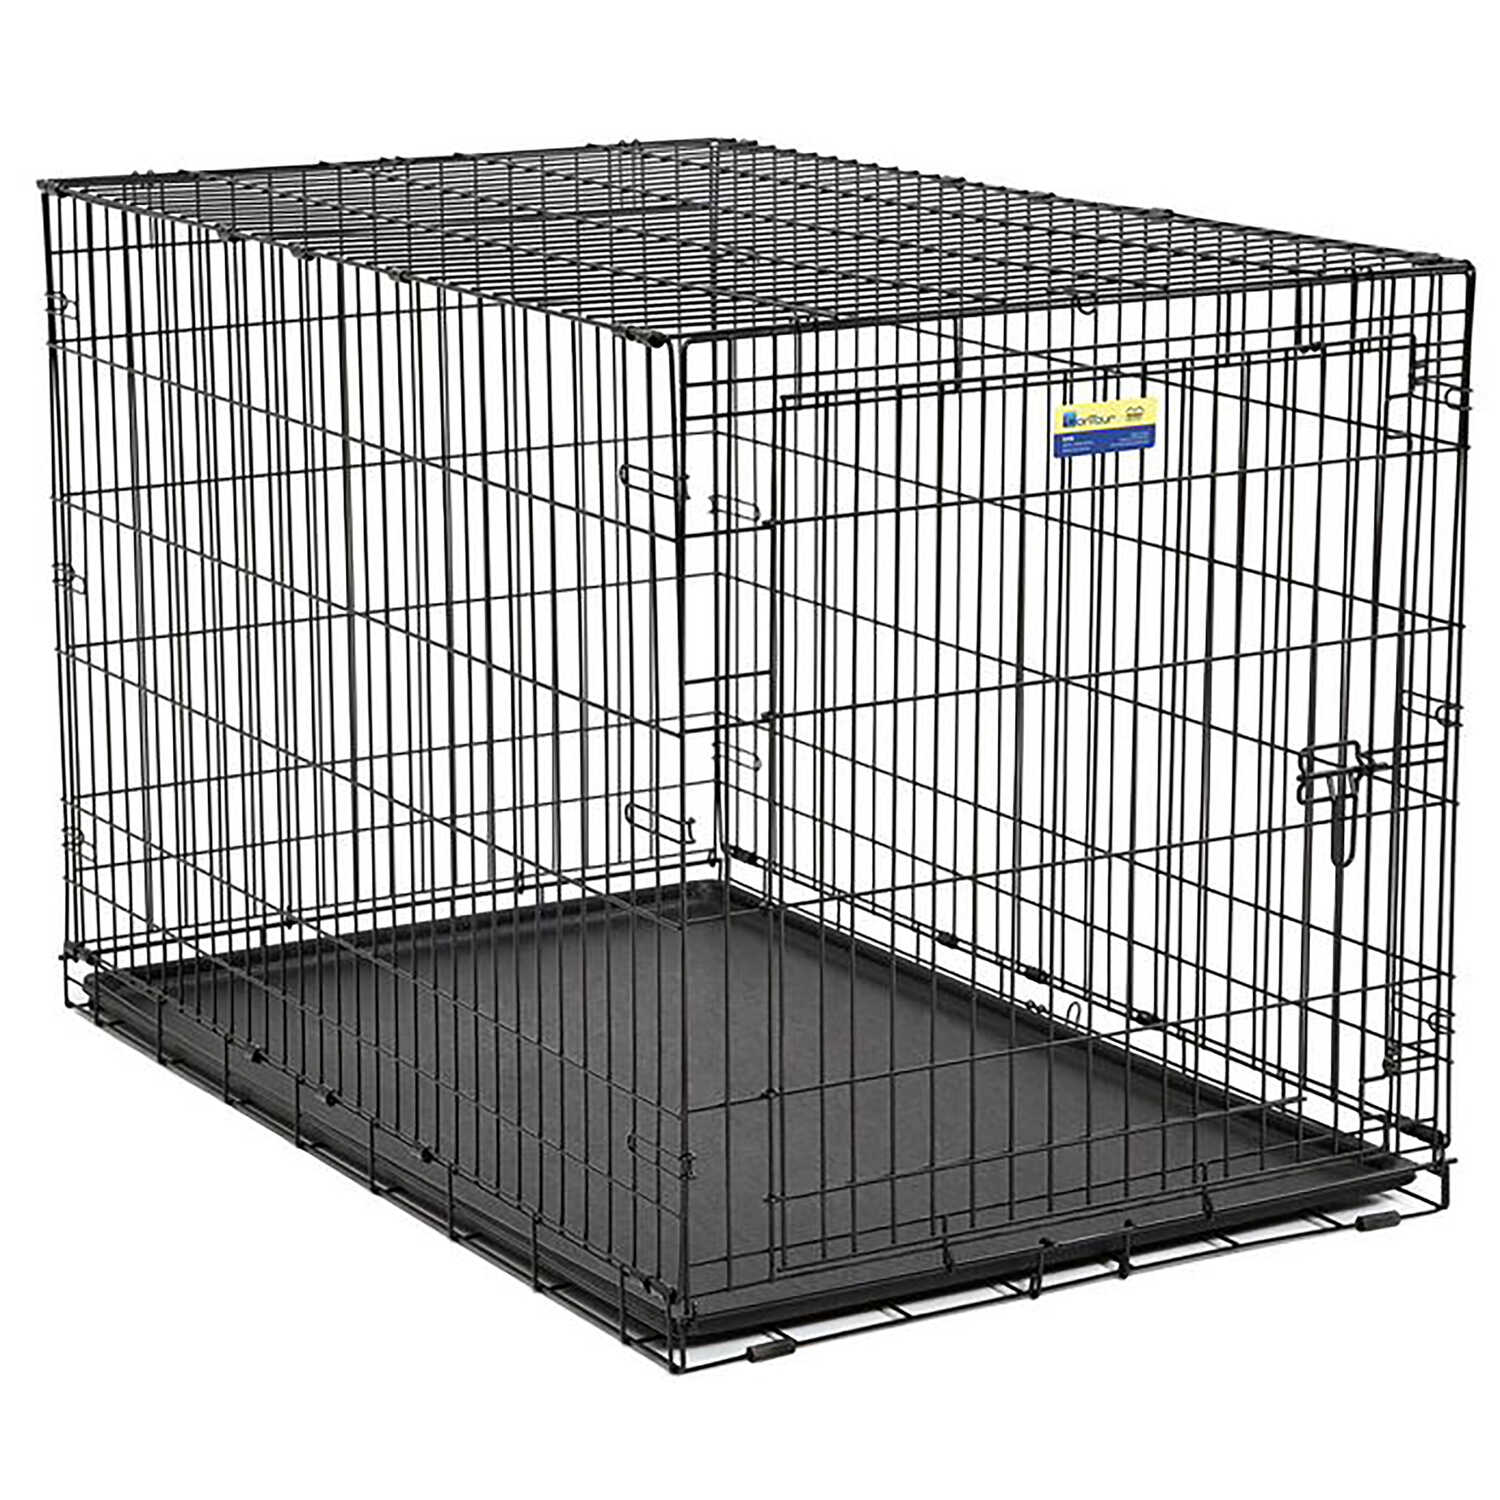 Contour  Extra Large  Steel  Dog Crate  31.9 in. H x 33 in. W Black